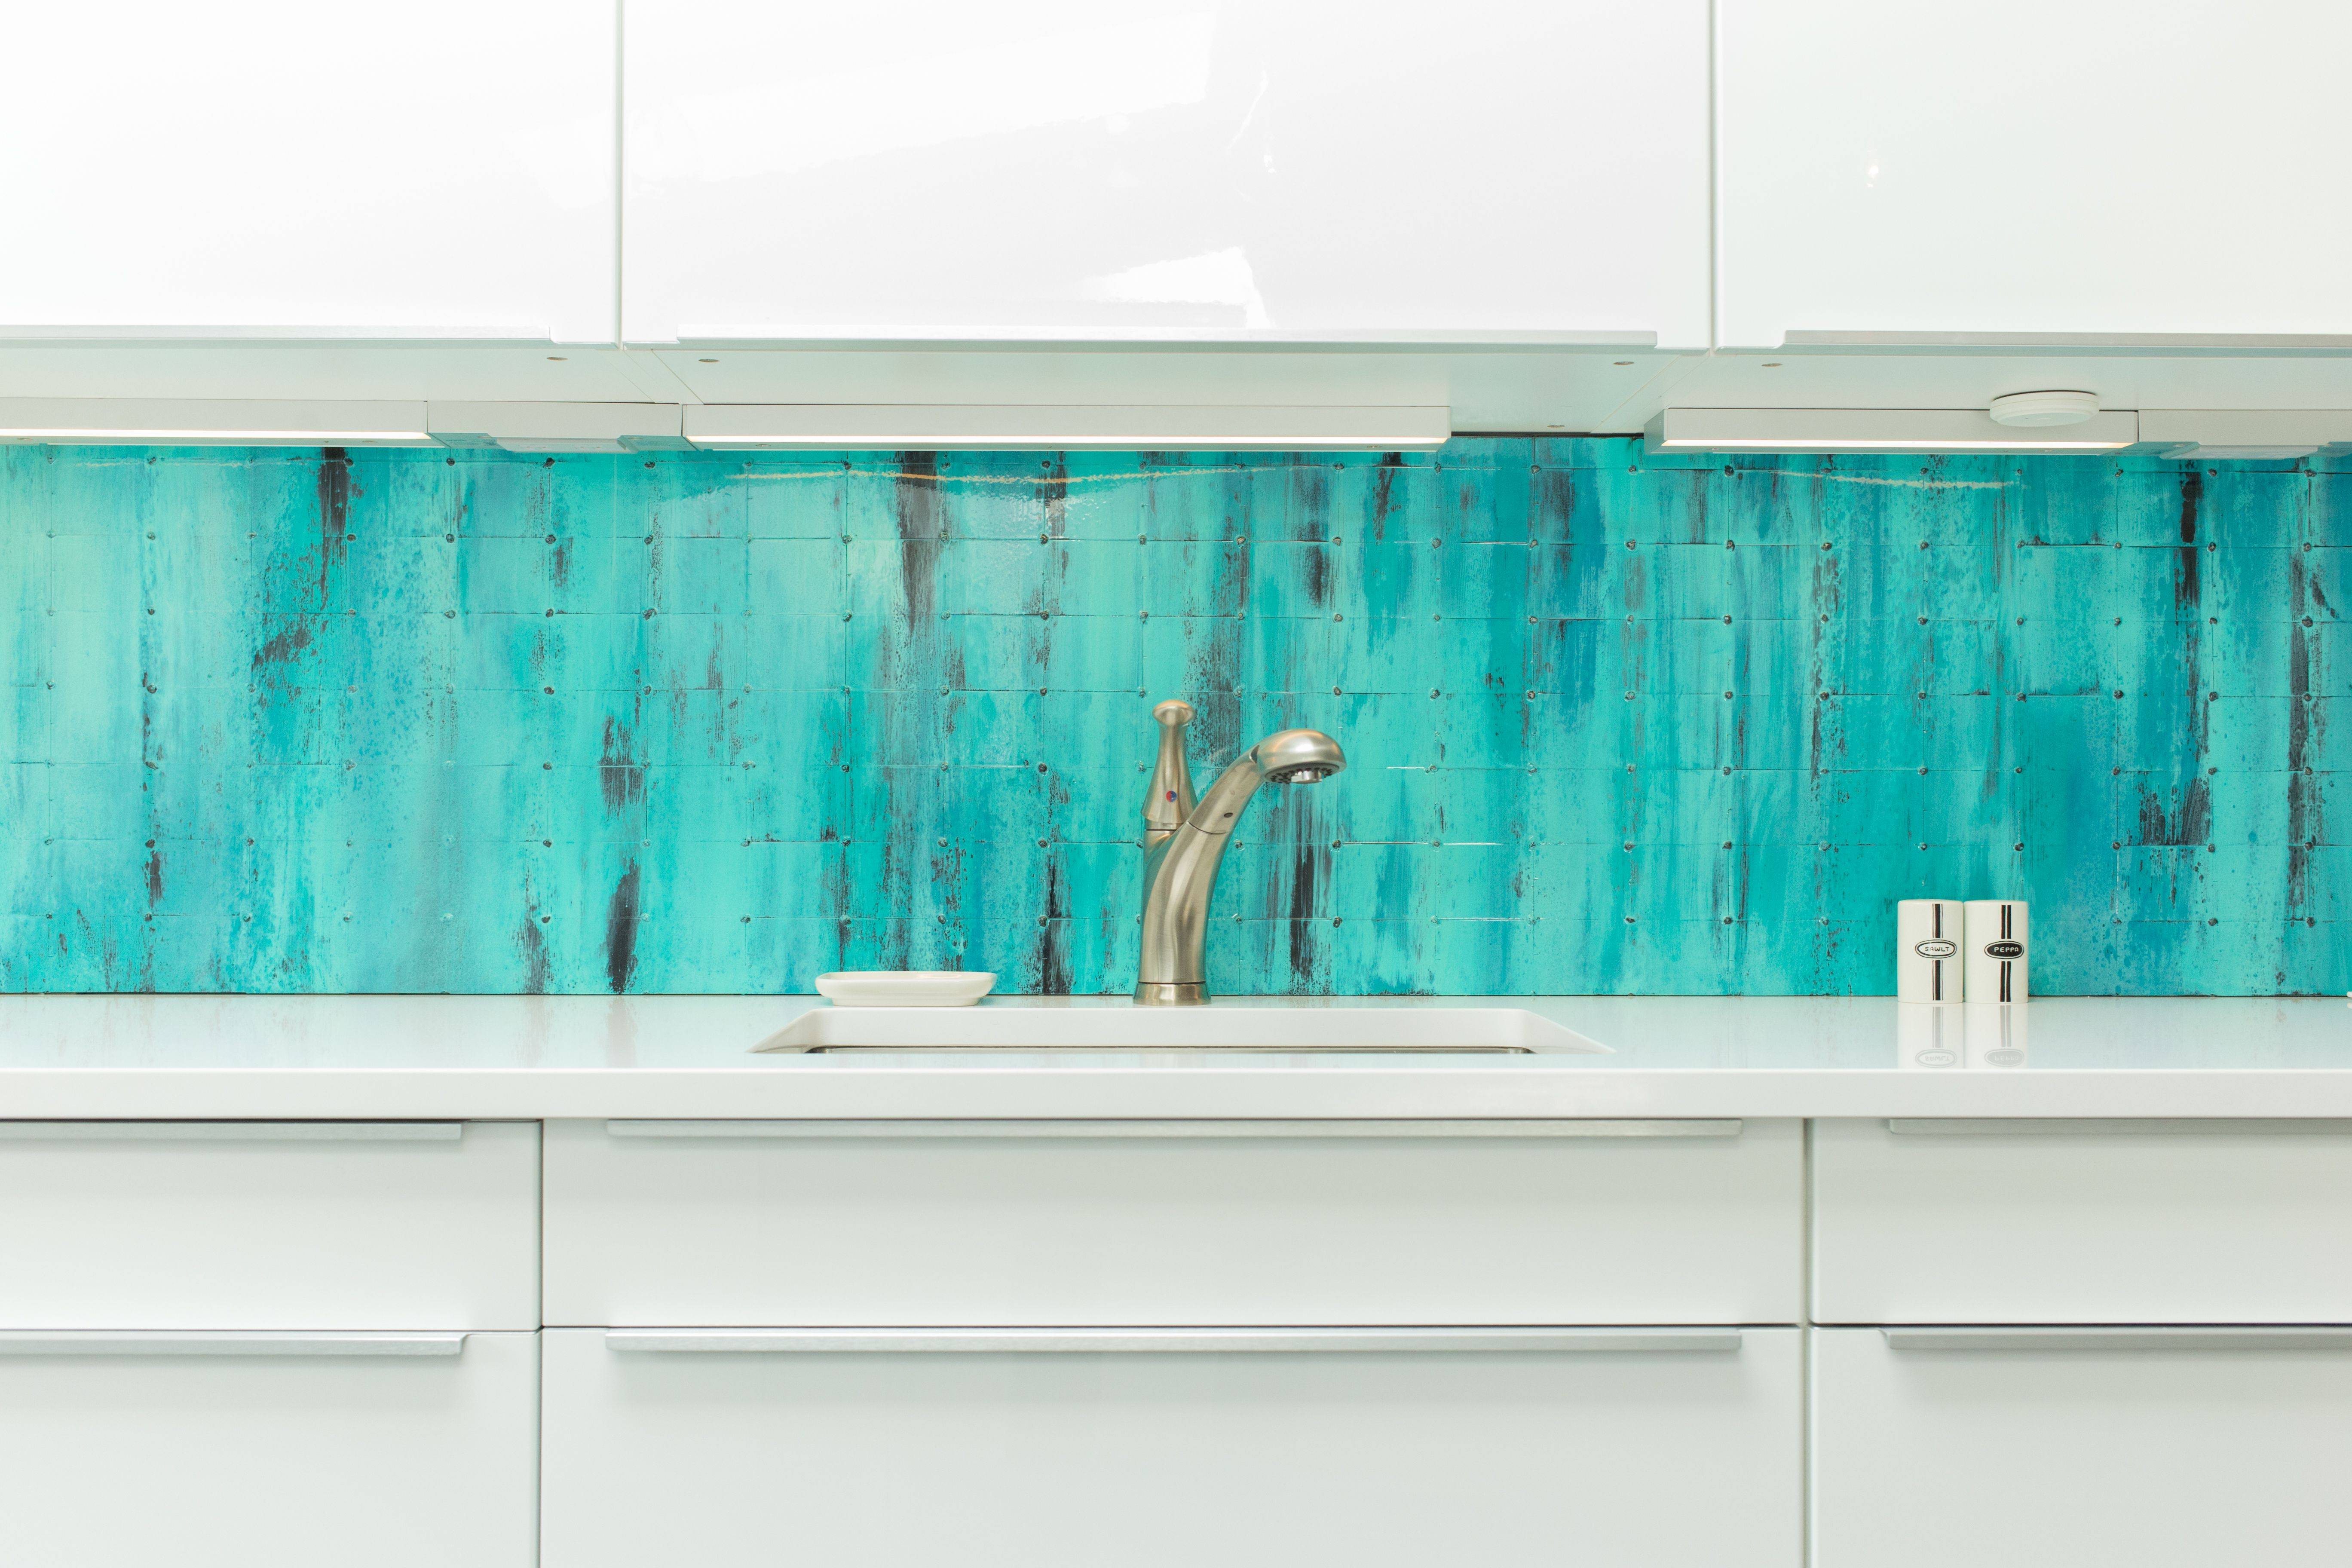 Buy Hand Made Custom Steel Handmade Backsplash Magnetic And Interchangeable To Order From Dangerous Color Custommade Com